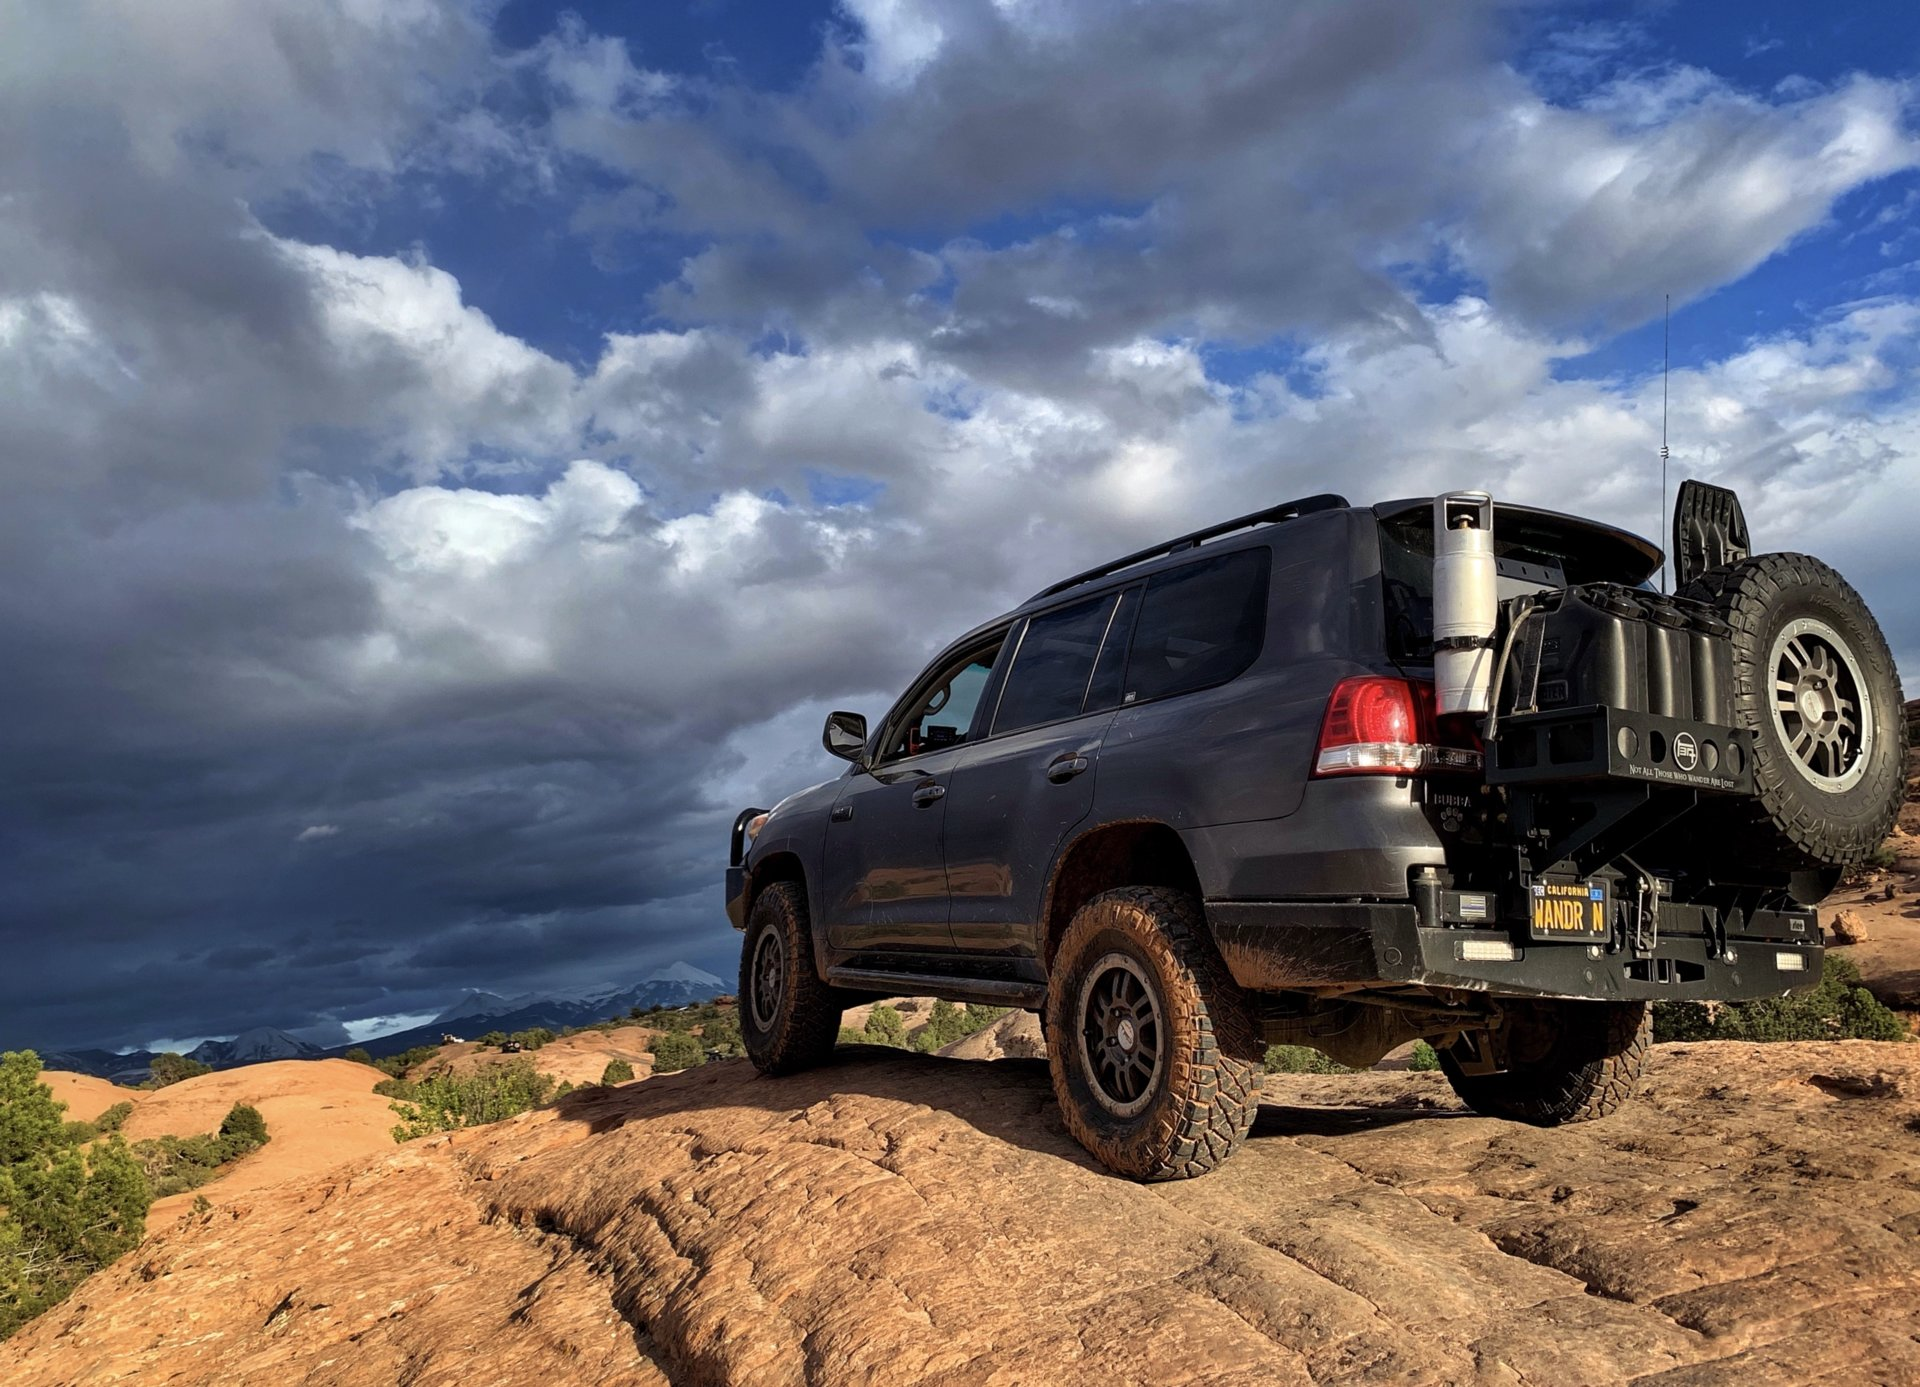 GX470 Wheel/Tire/Lift Picture Combination Thread | Page 14